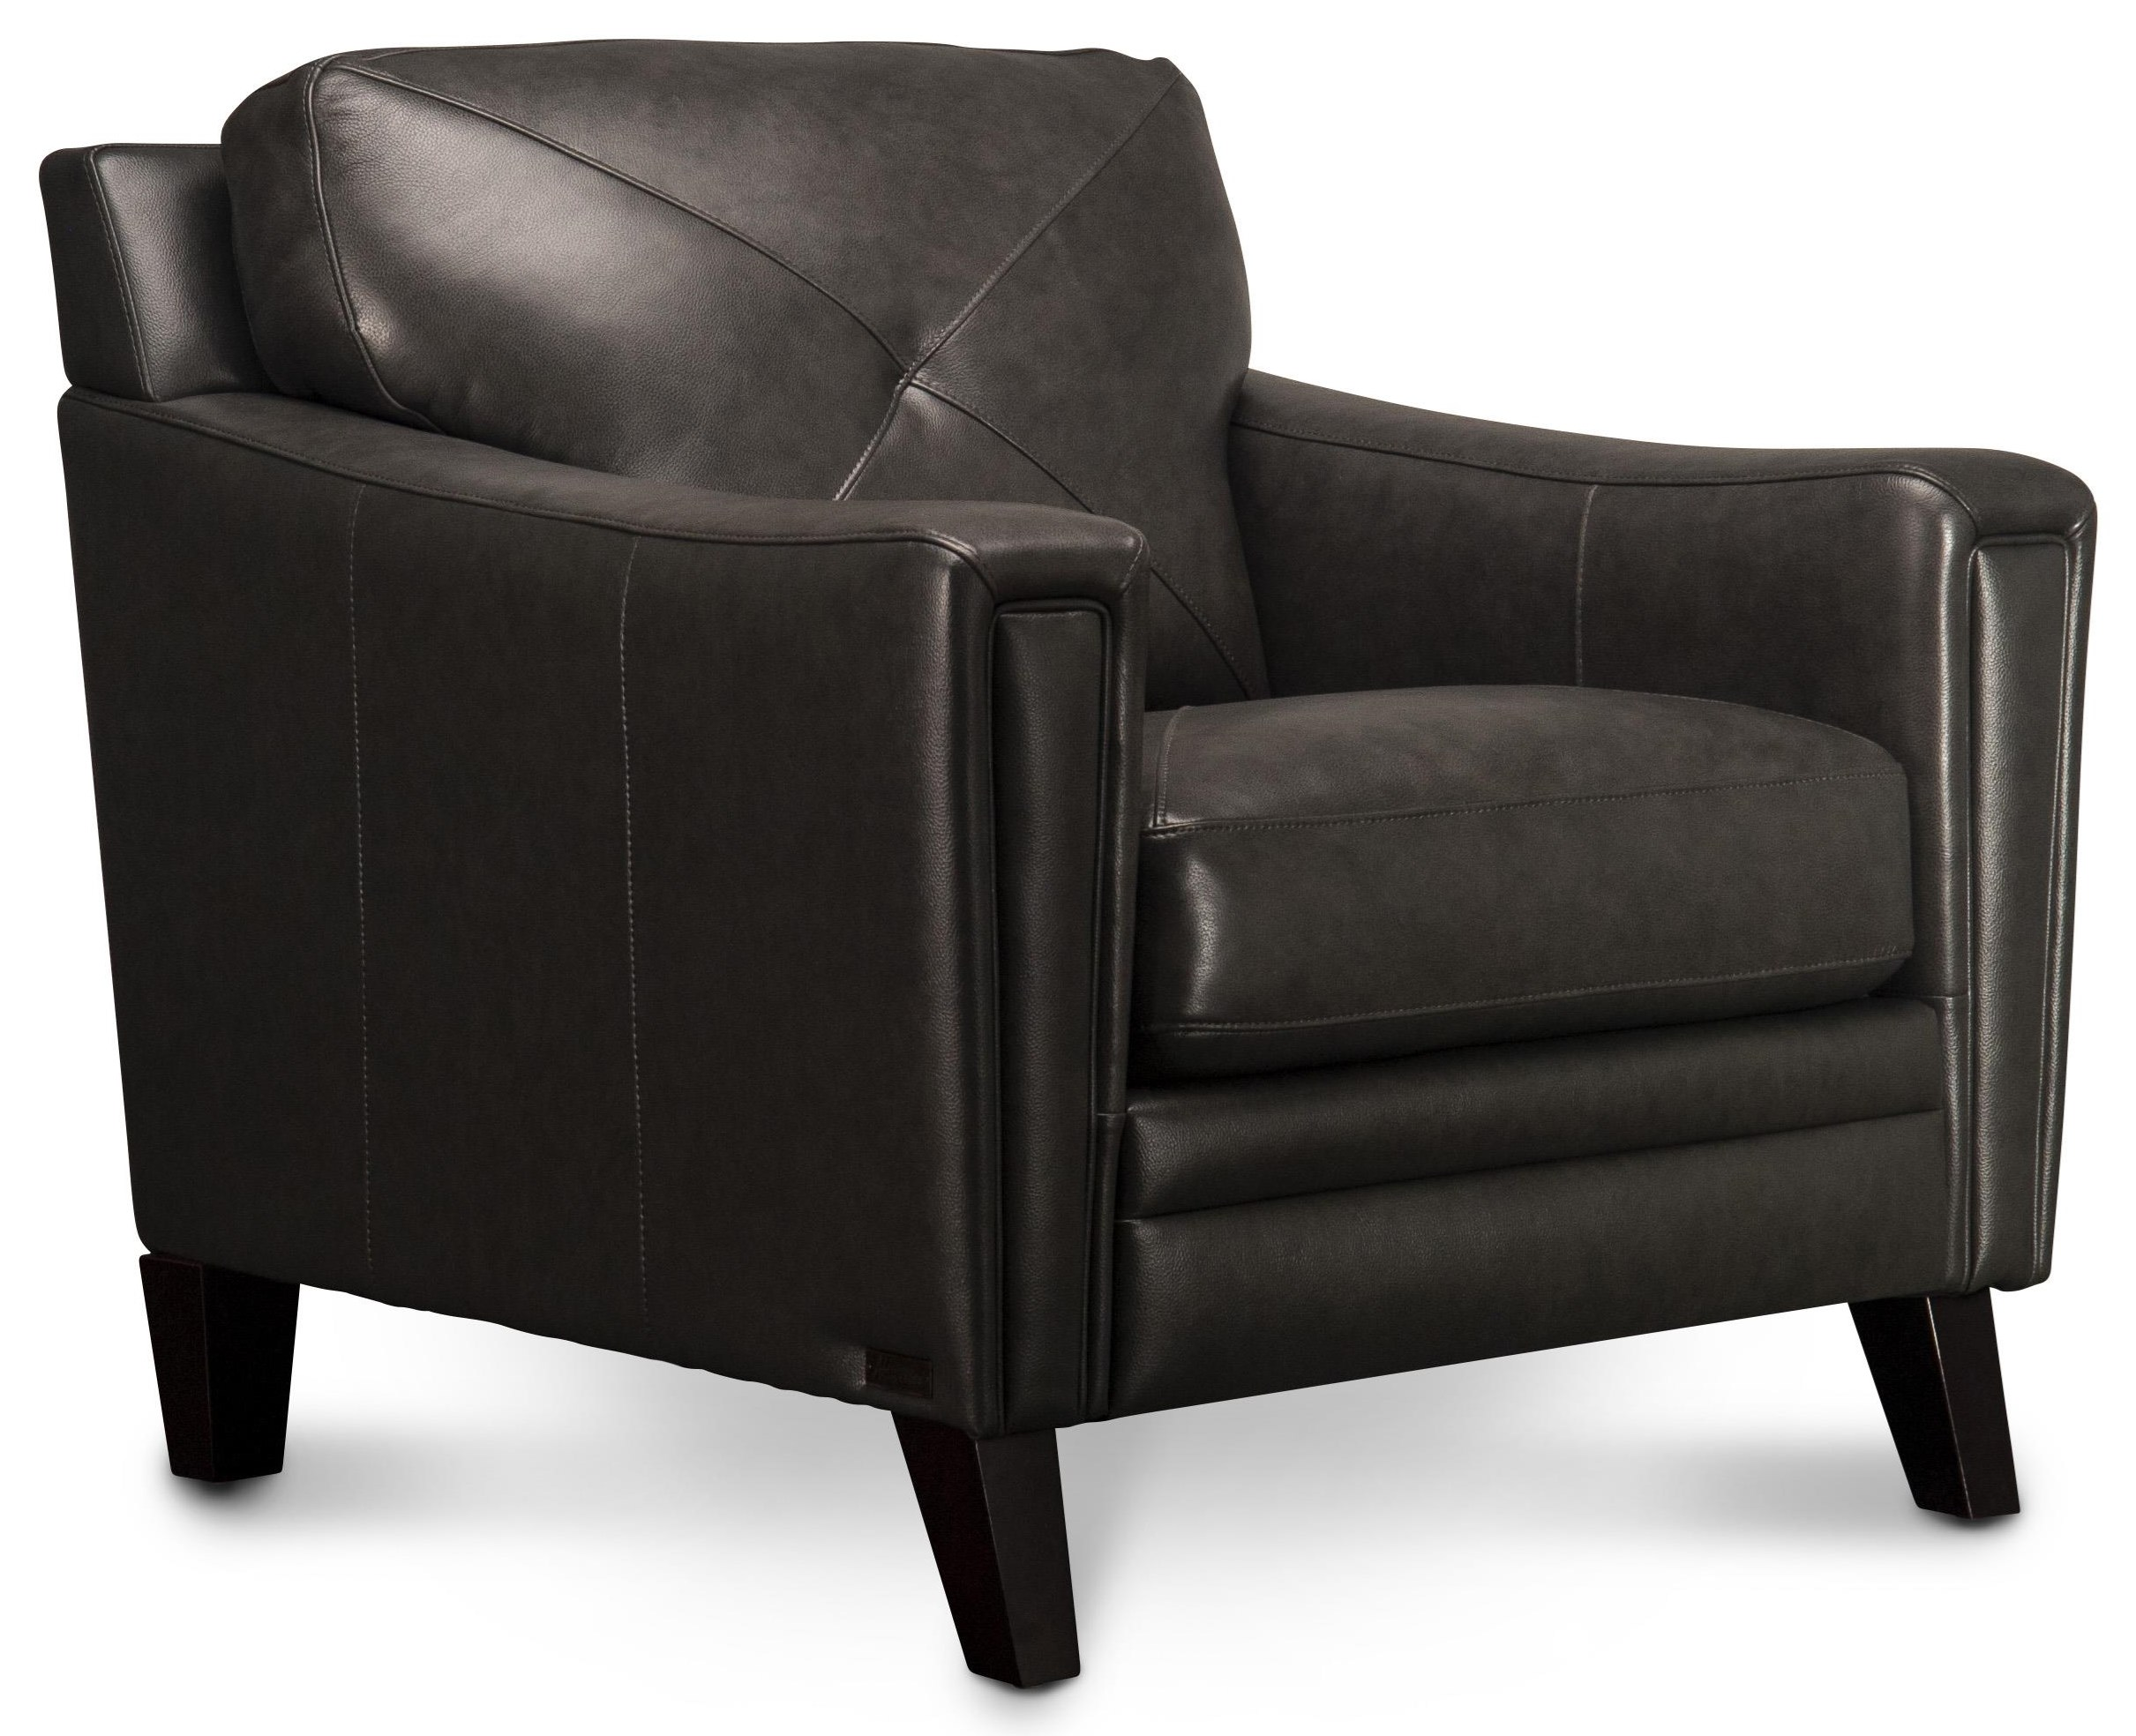 Wren Wren Leather Chair by Abbyson at Morris Home